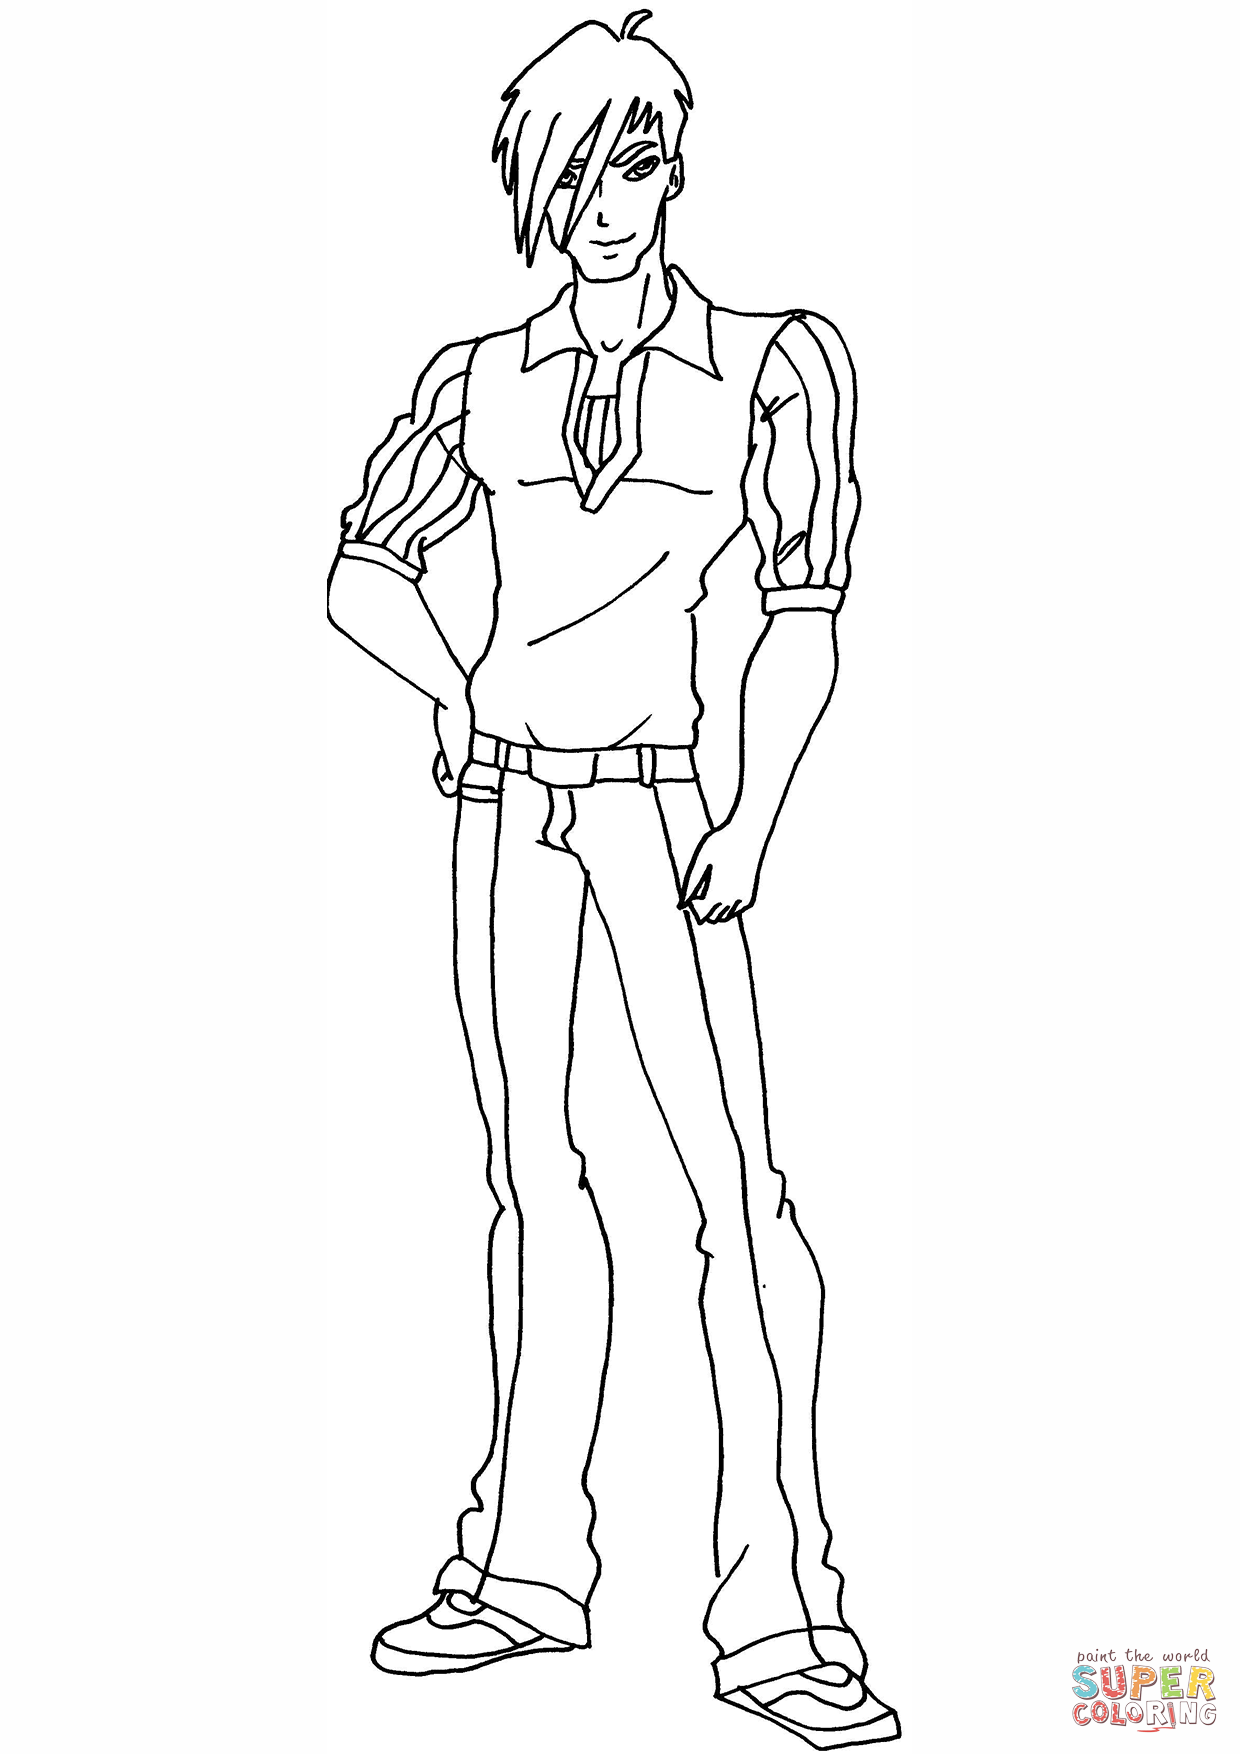 1240x1754 Fresh Anime Guy Coloring Pages